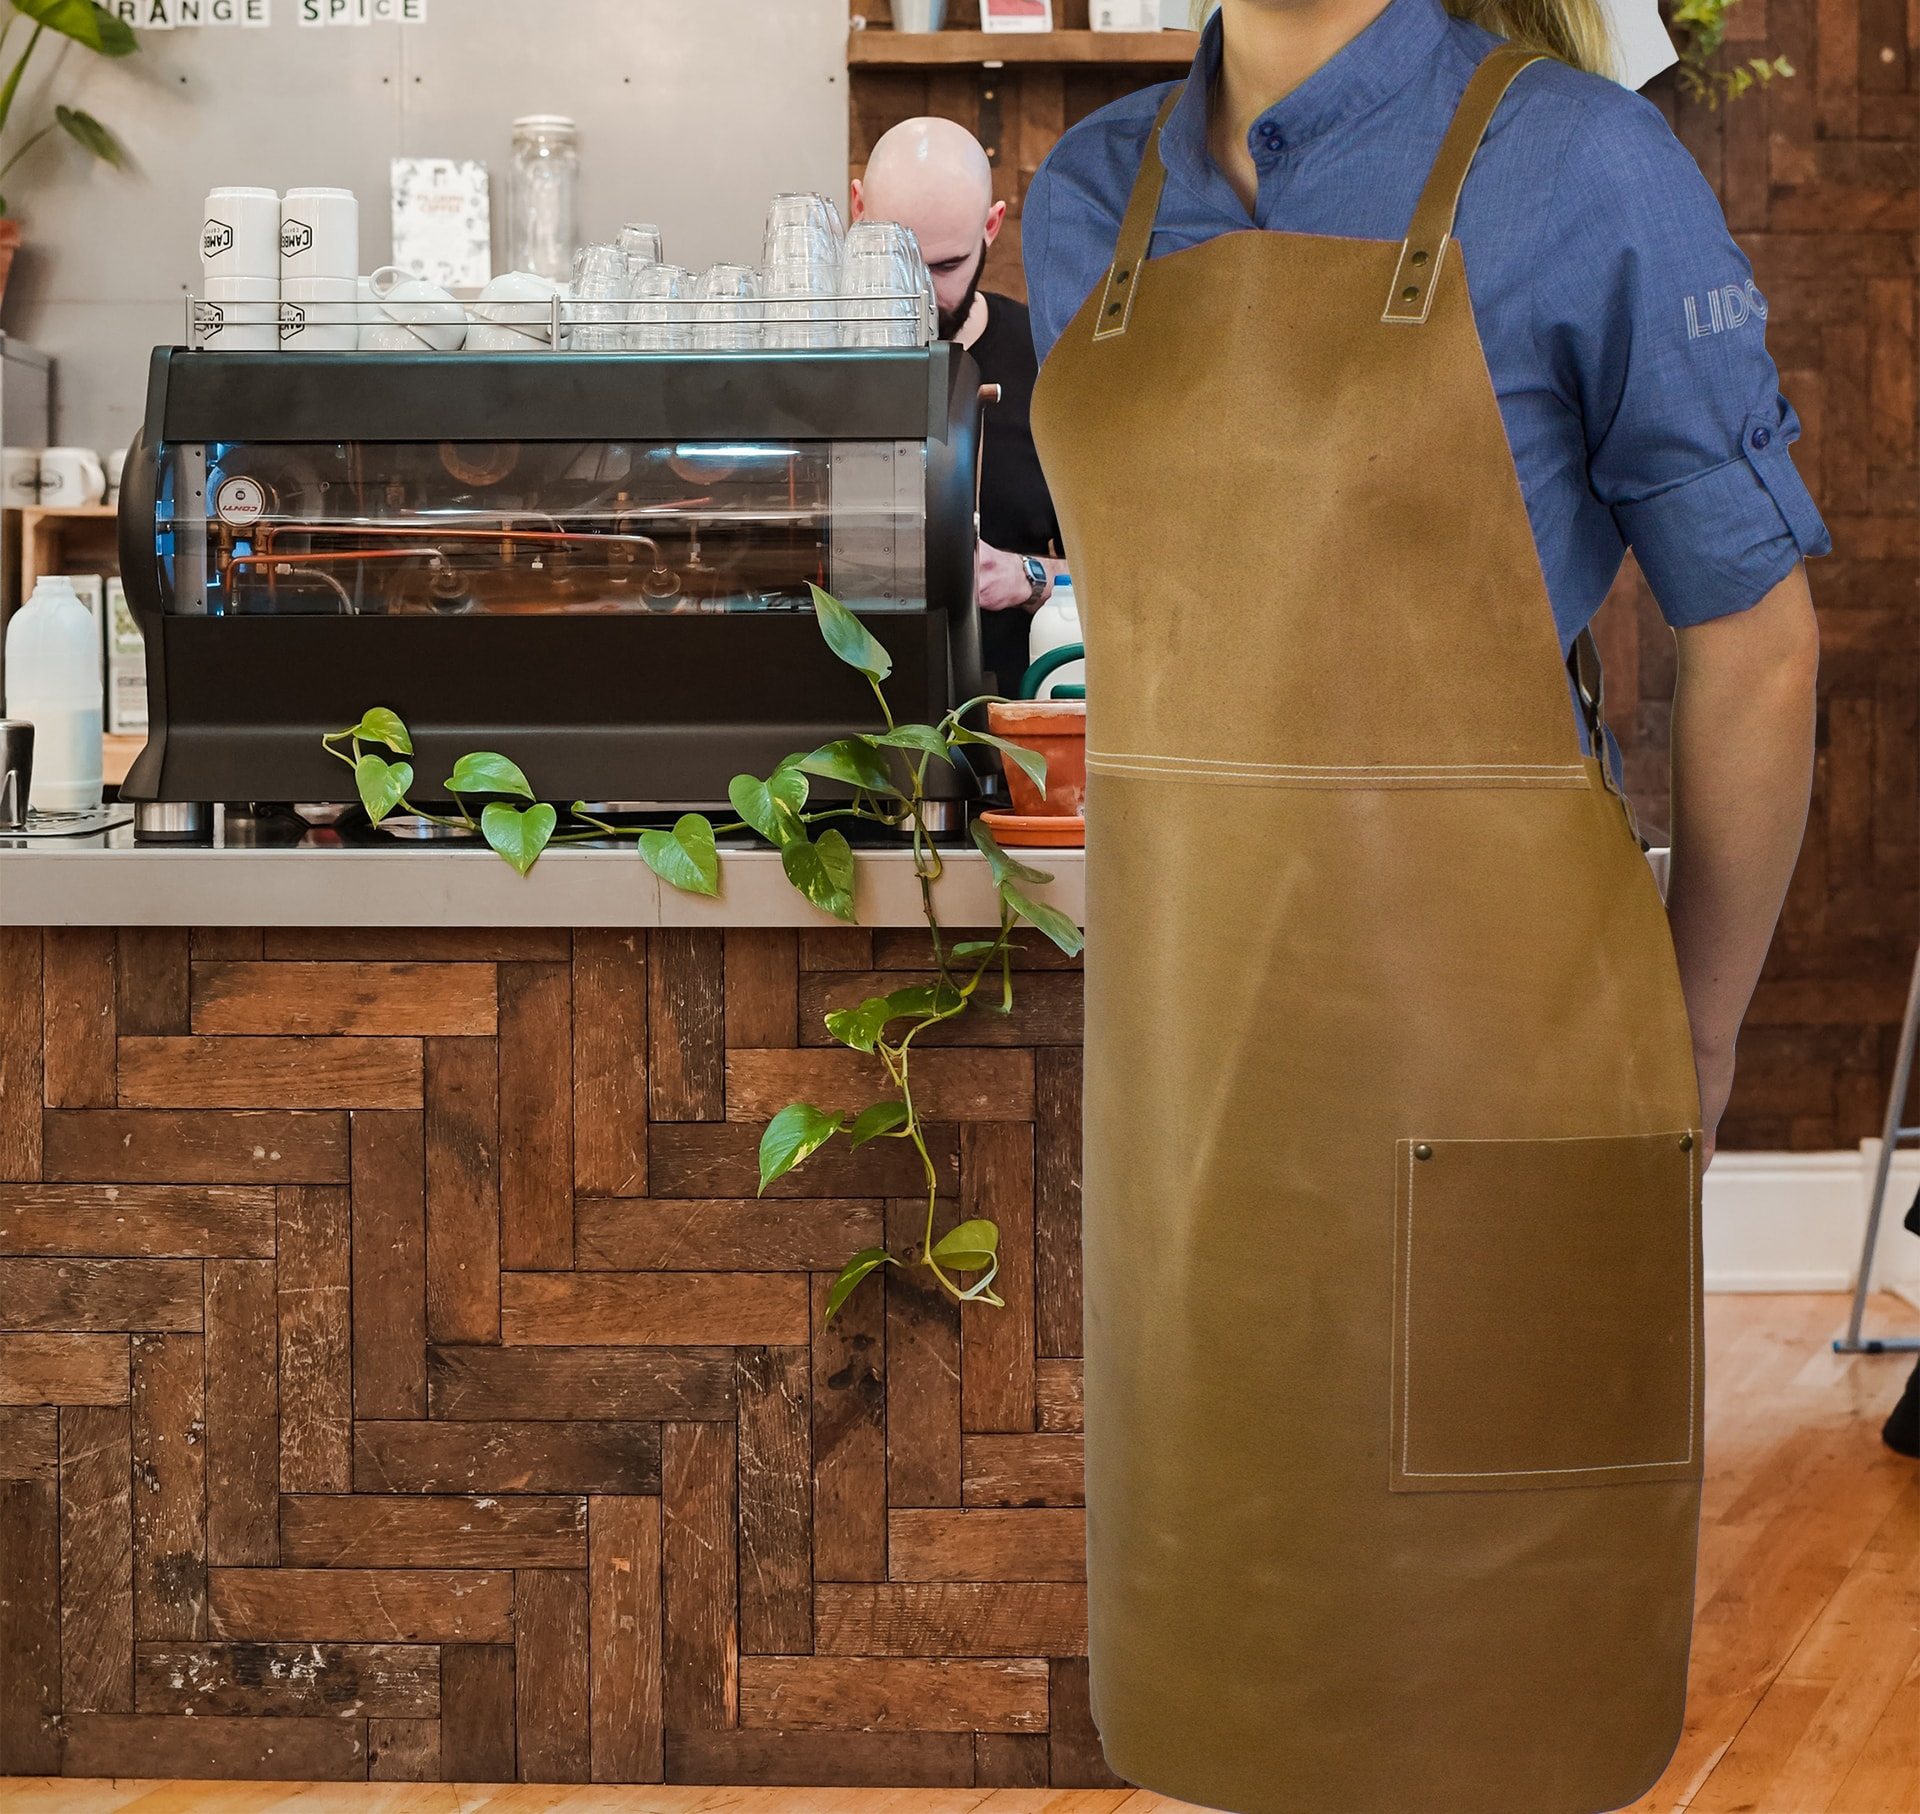 Cross back bib apron on model in cafe